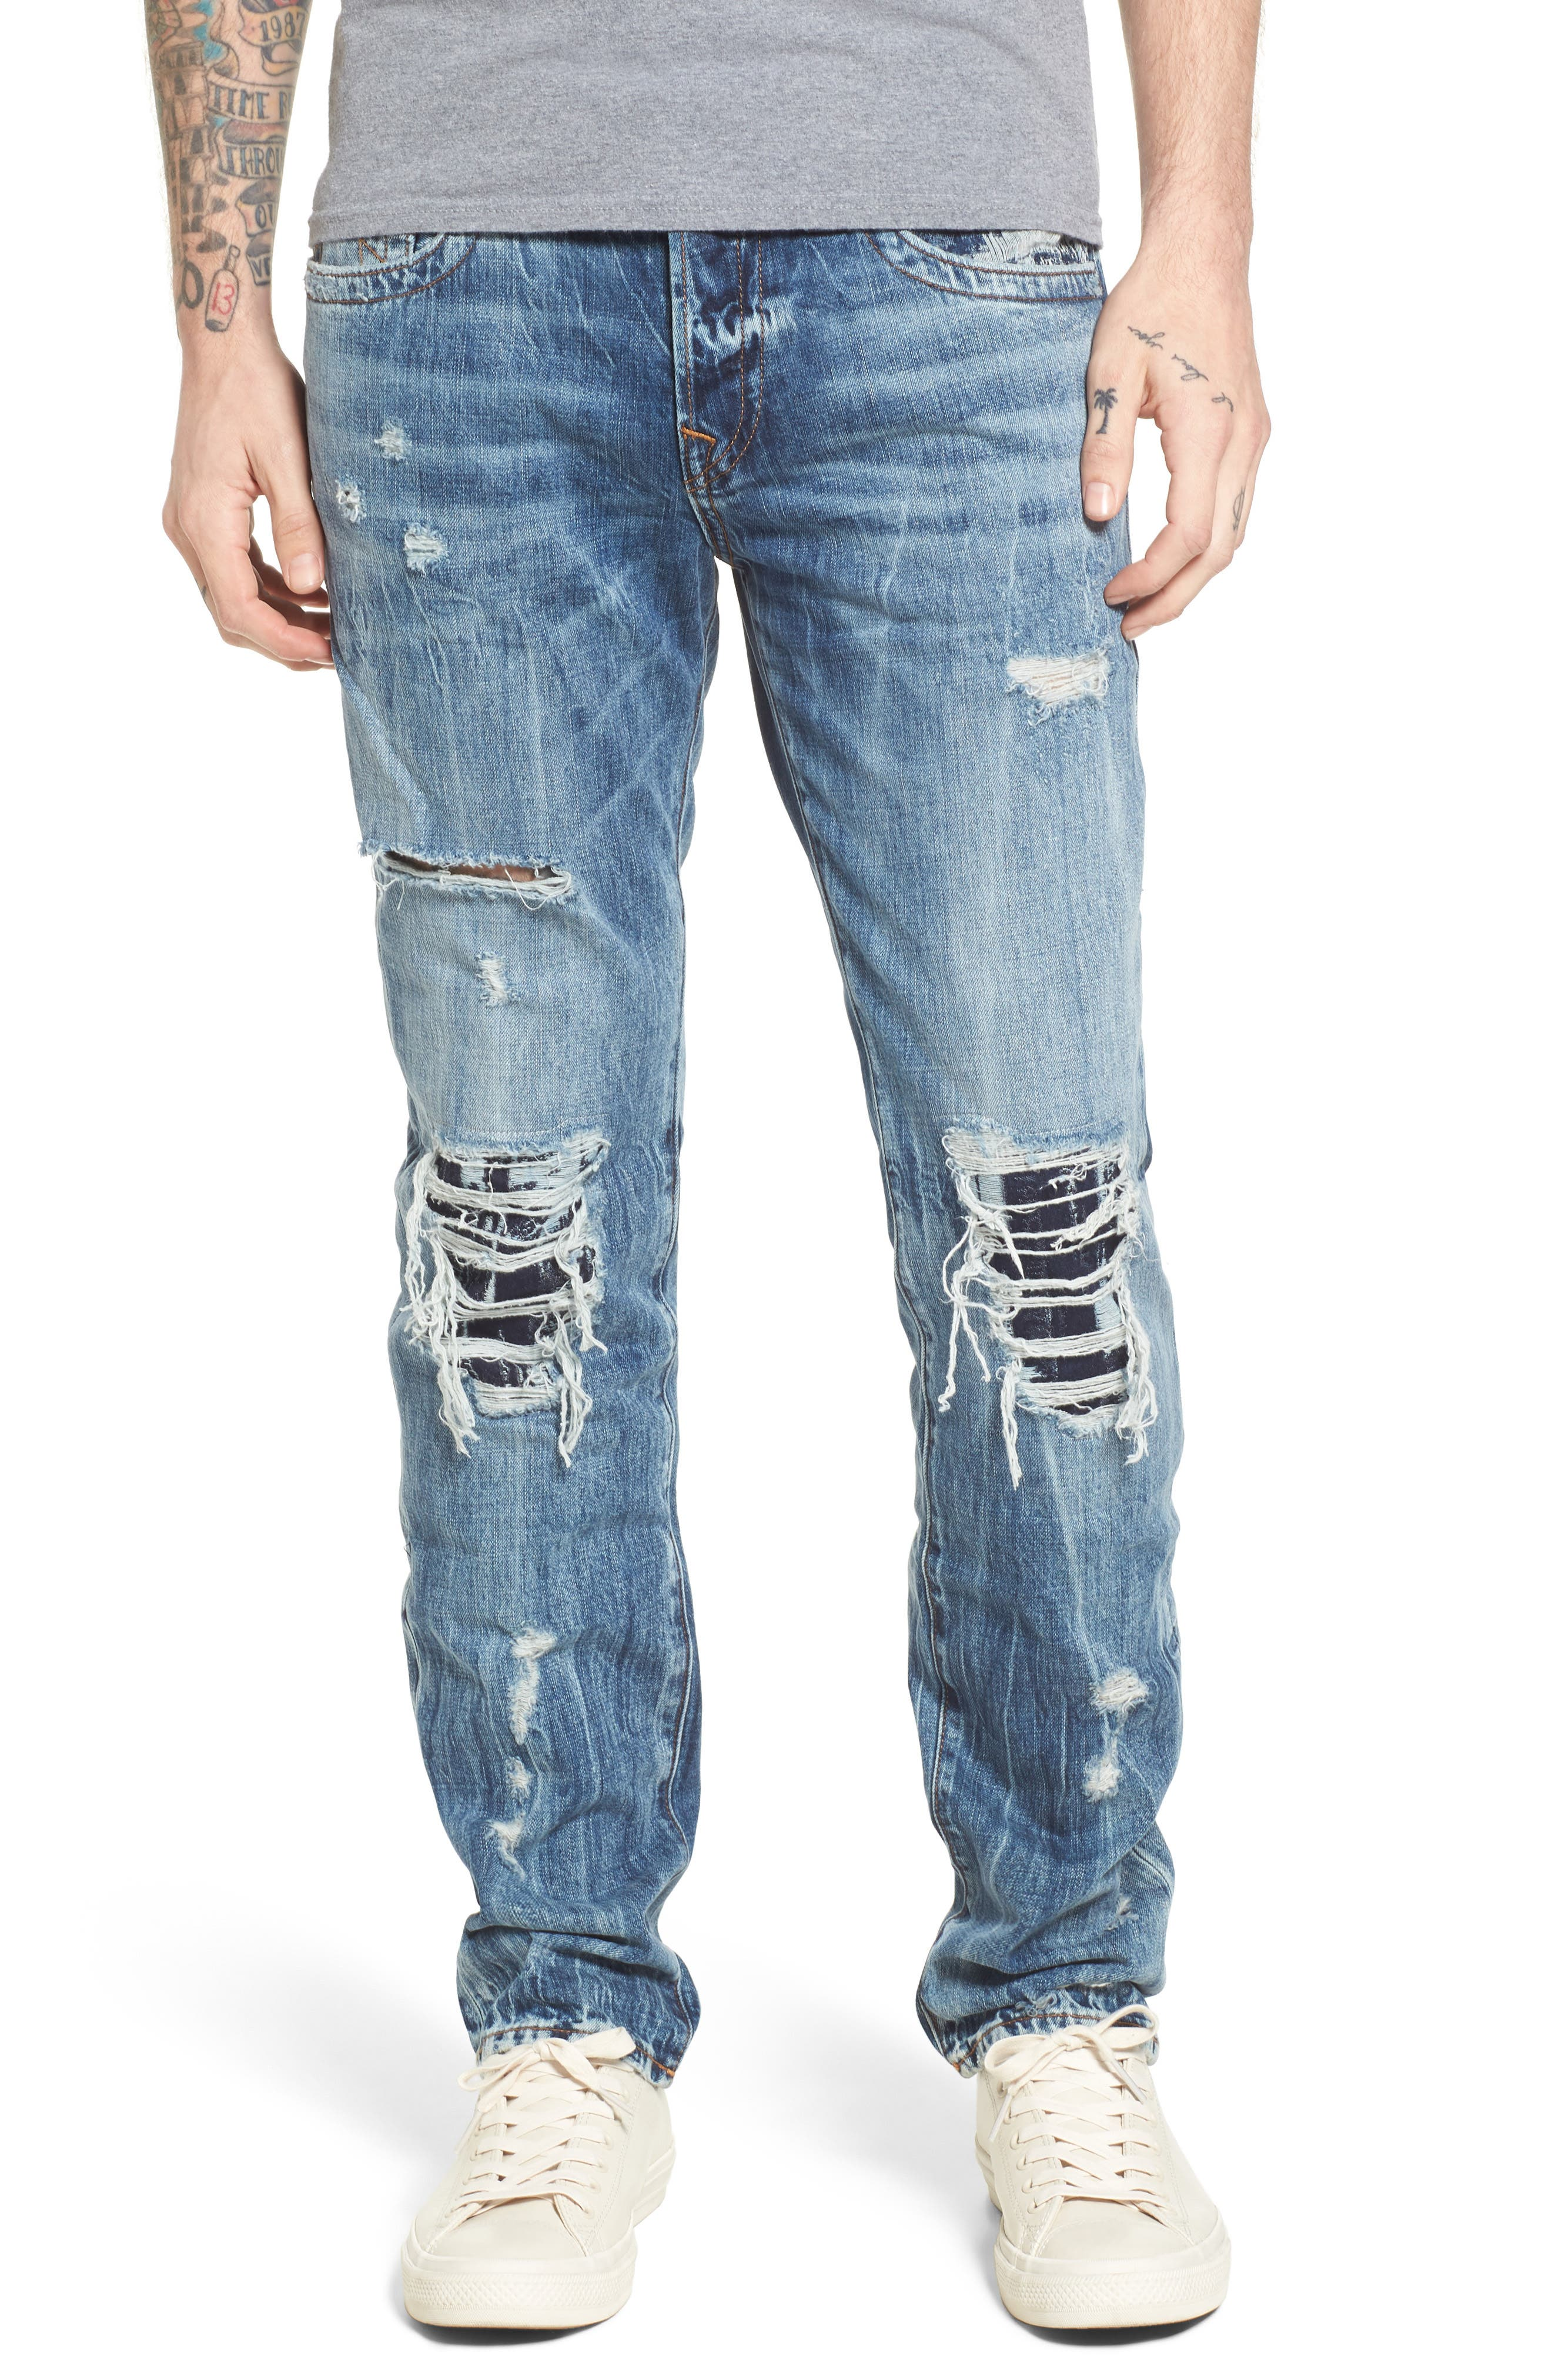 Rocco Skinny Fit Jeans,                         Main,                         color, 400